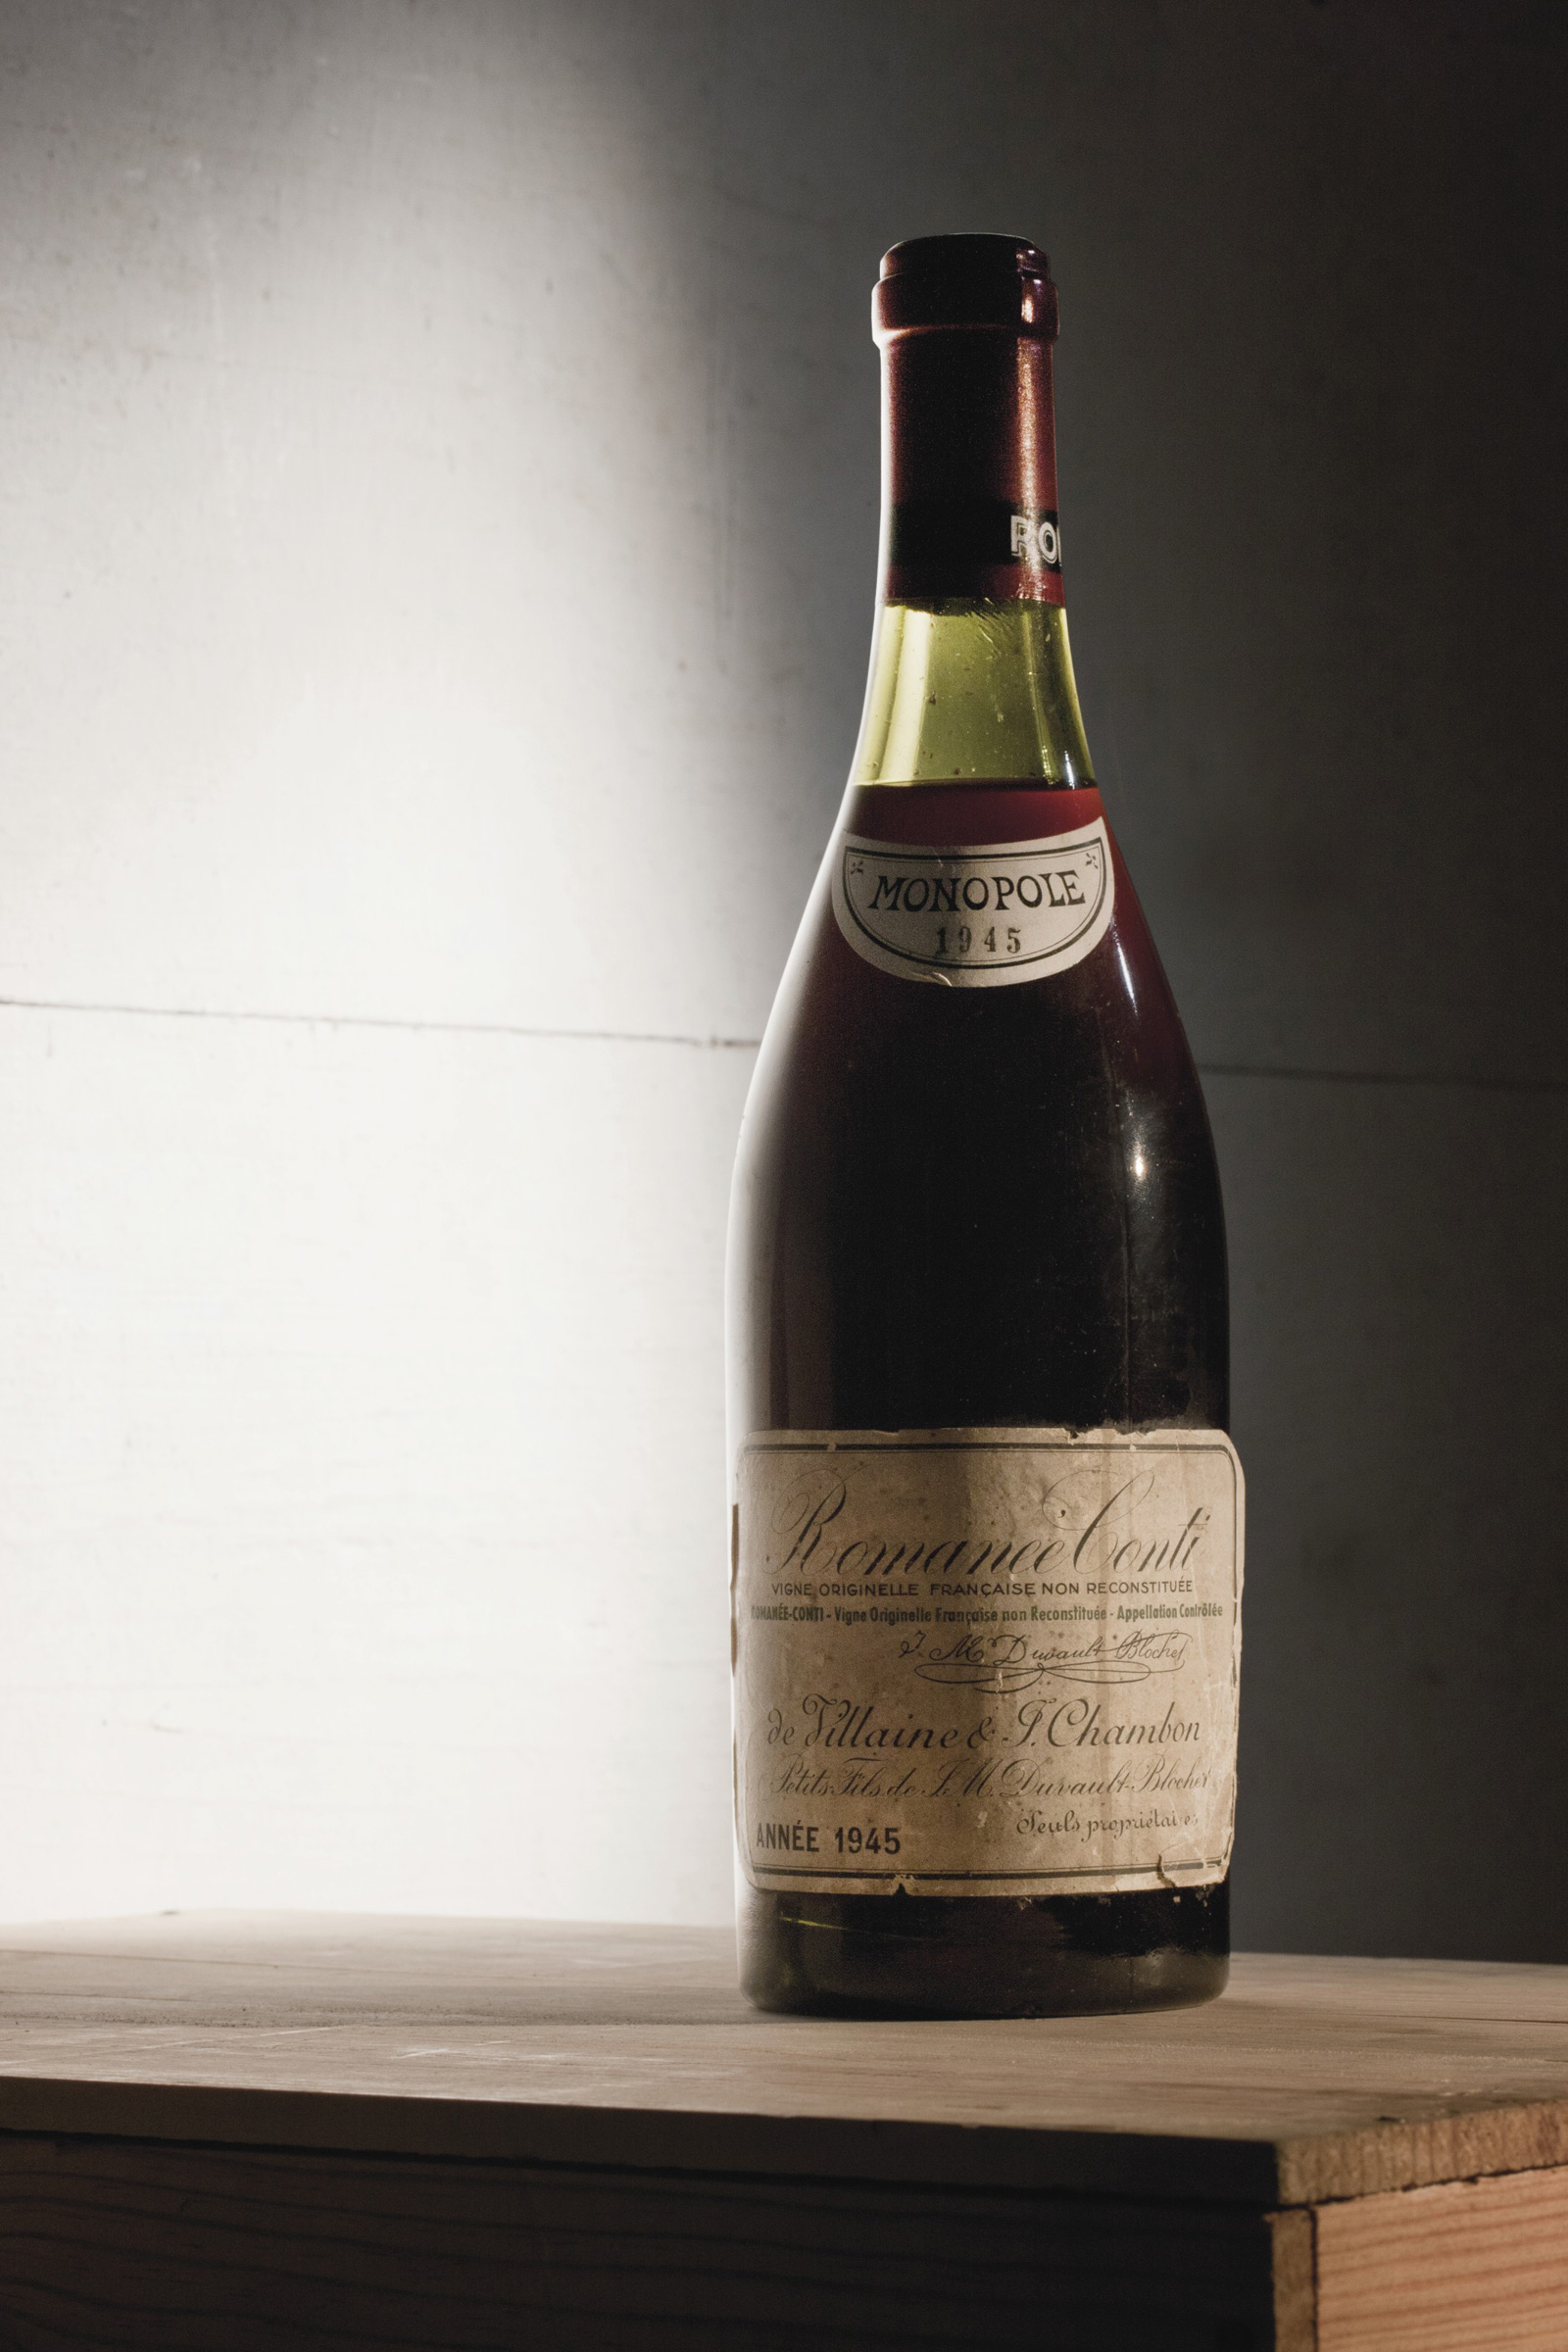 750 ml bottle of 1945